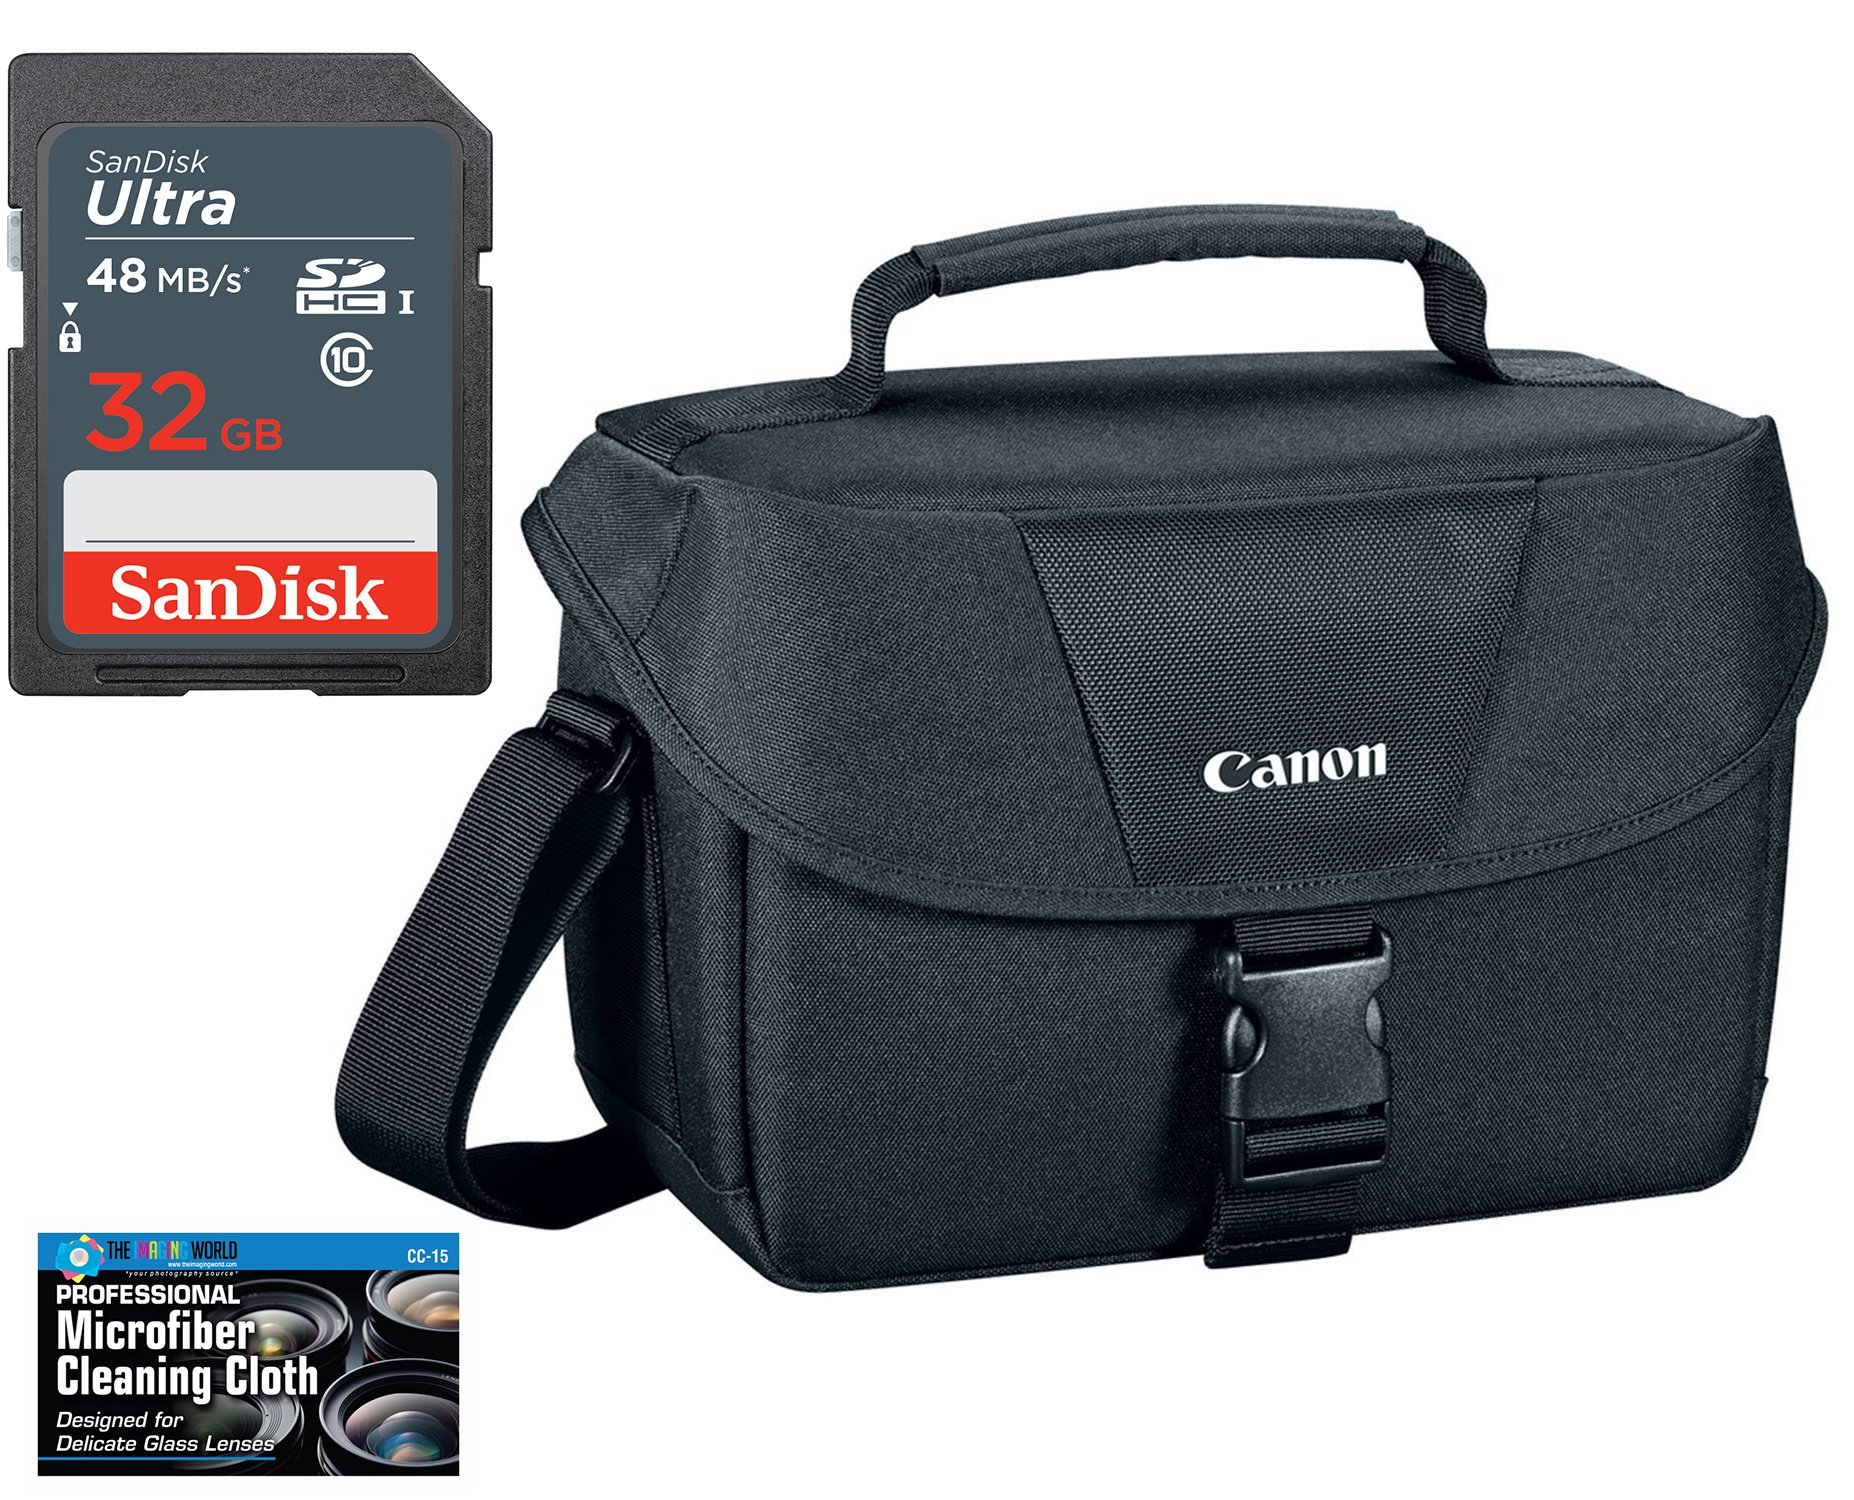 Canon 100ES Well Padded Multi Compartment Compact Digital SLR EOS Rebel Camera Gadget Case + SanDisk 32GB High Speed Memory Card +Cleaning Cloth for 77D, T6s, T7i, T6i, T5i, SL1, T6, T5, 70D, 80D & 6D